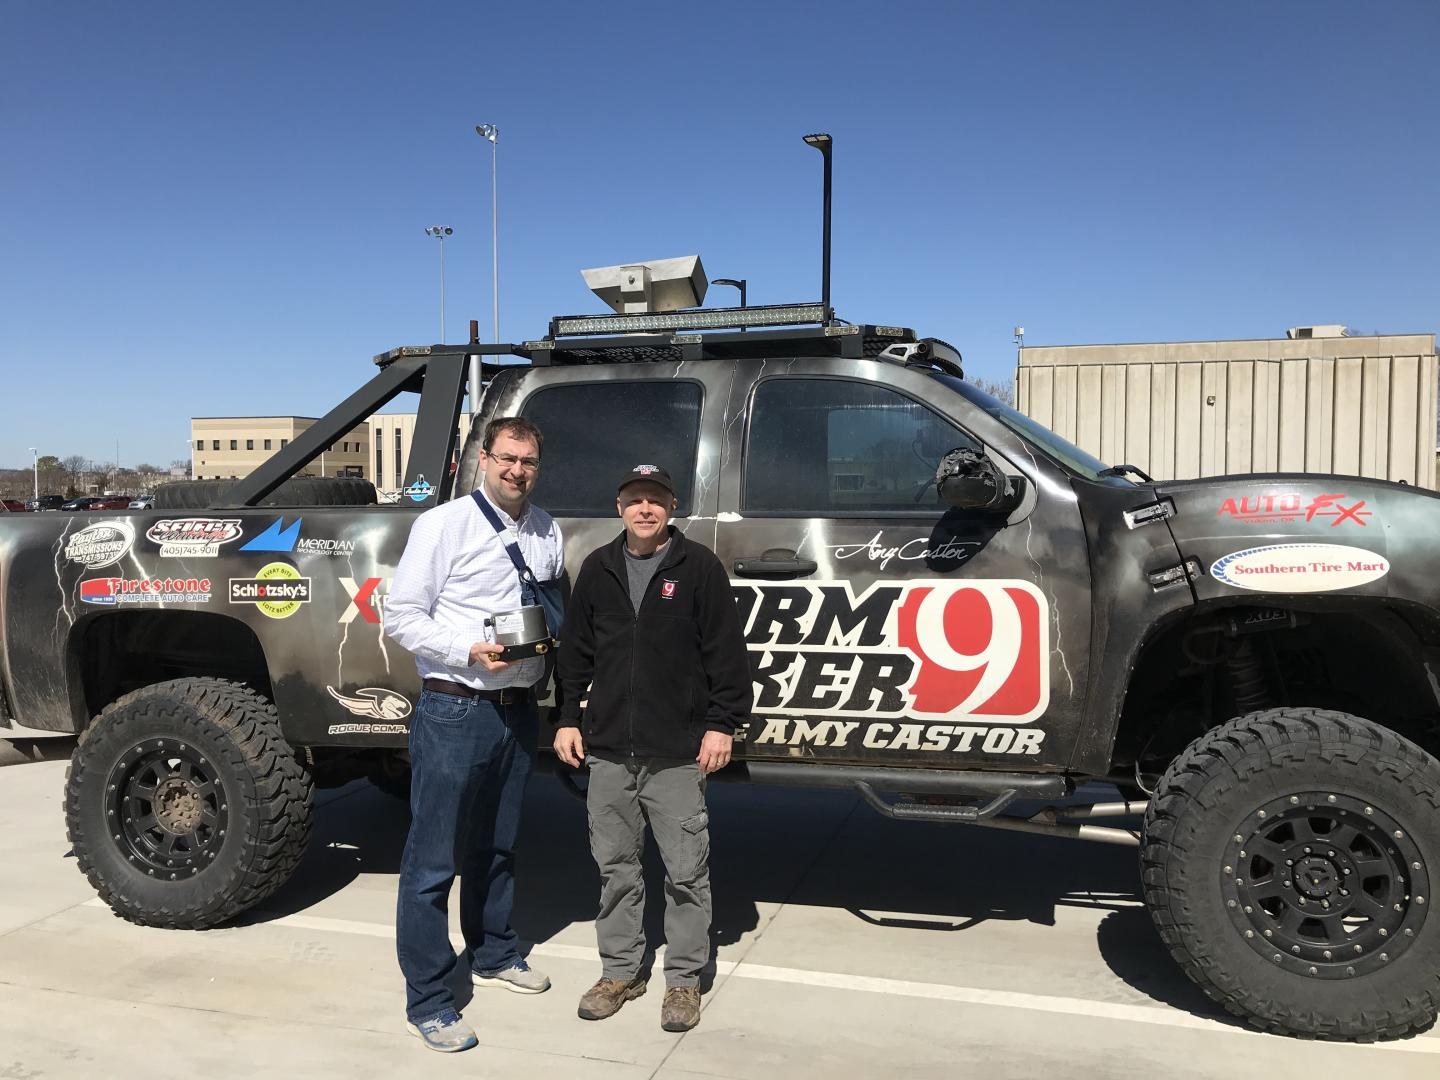 Storm Chasing Truck with Infrasound Sensor